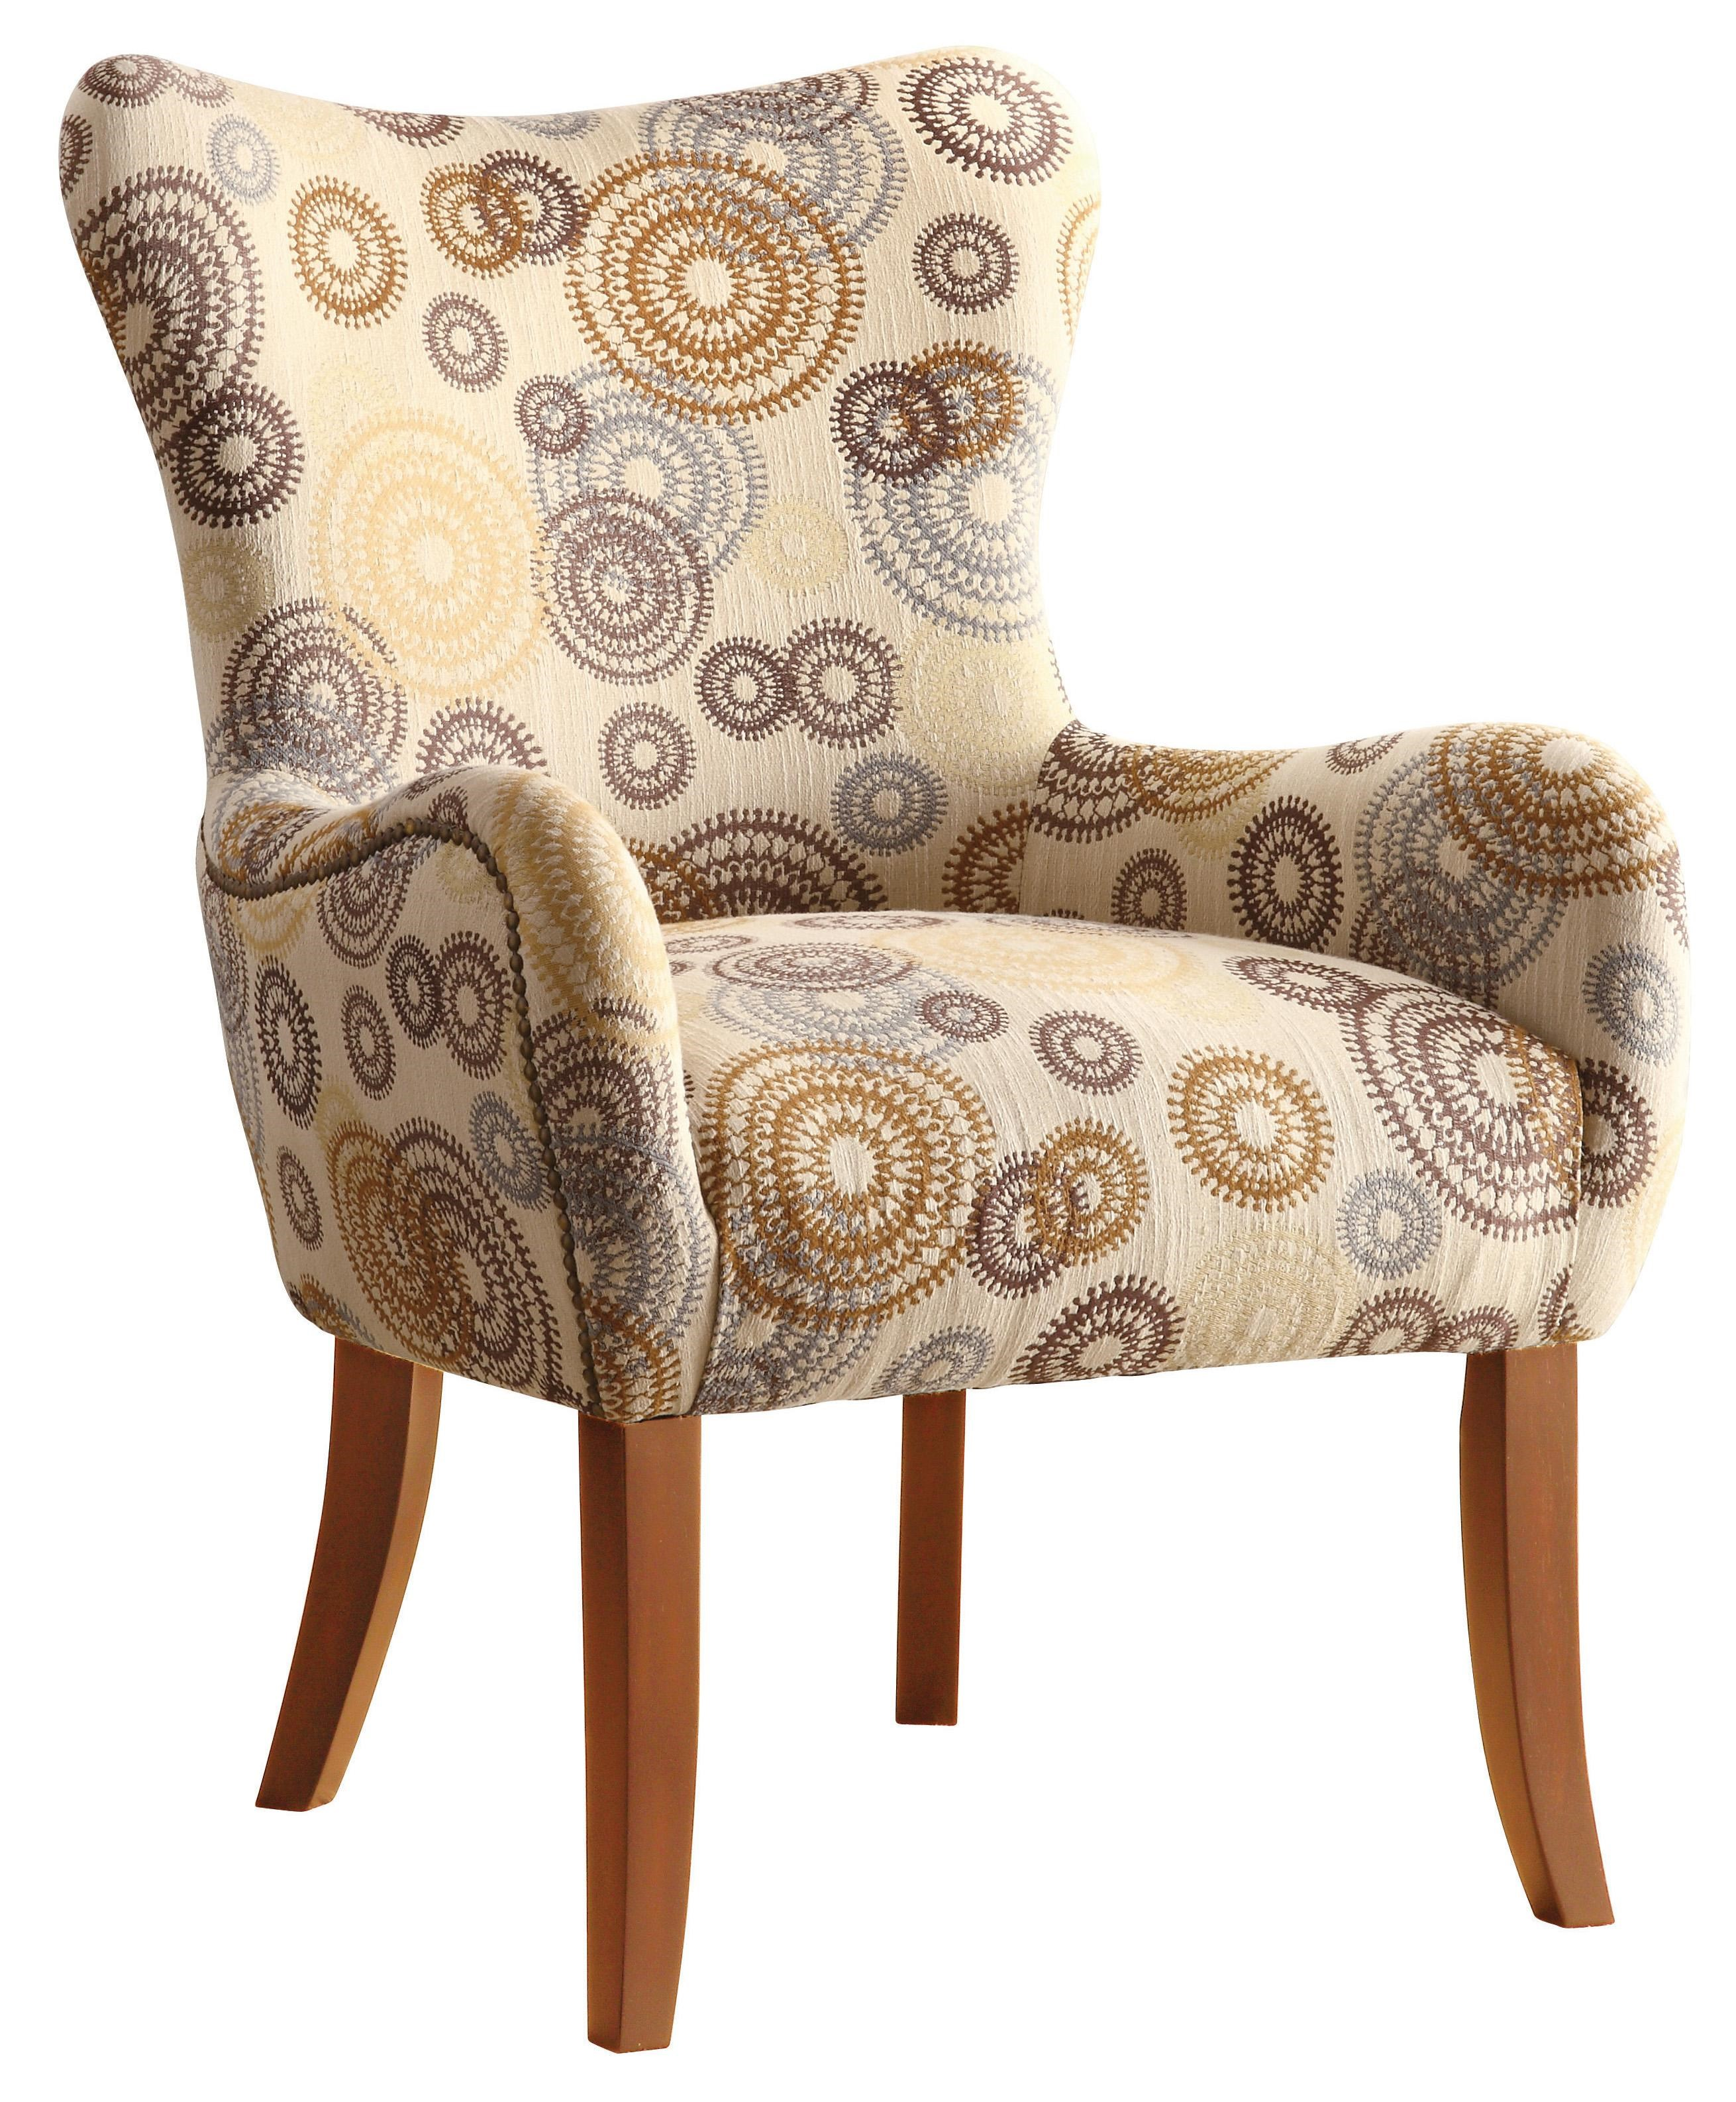 Coaster Accent Seating Accent Chair W/ Nailhead Trimming   Coaster Fine  Furniture